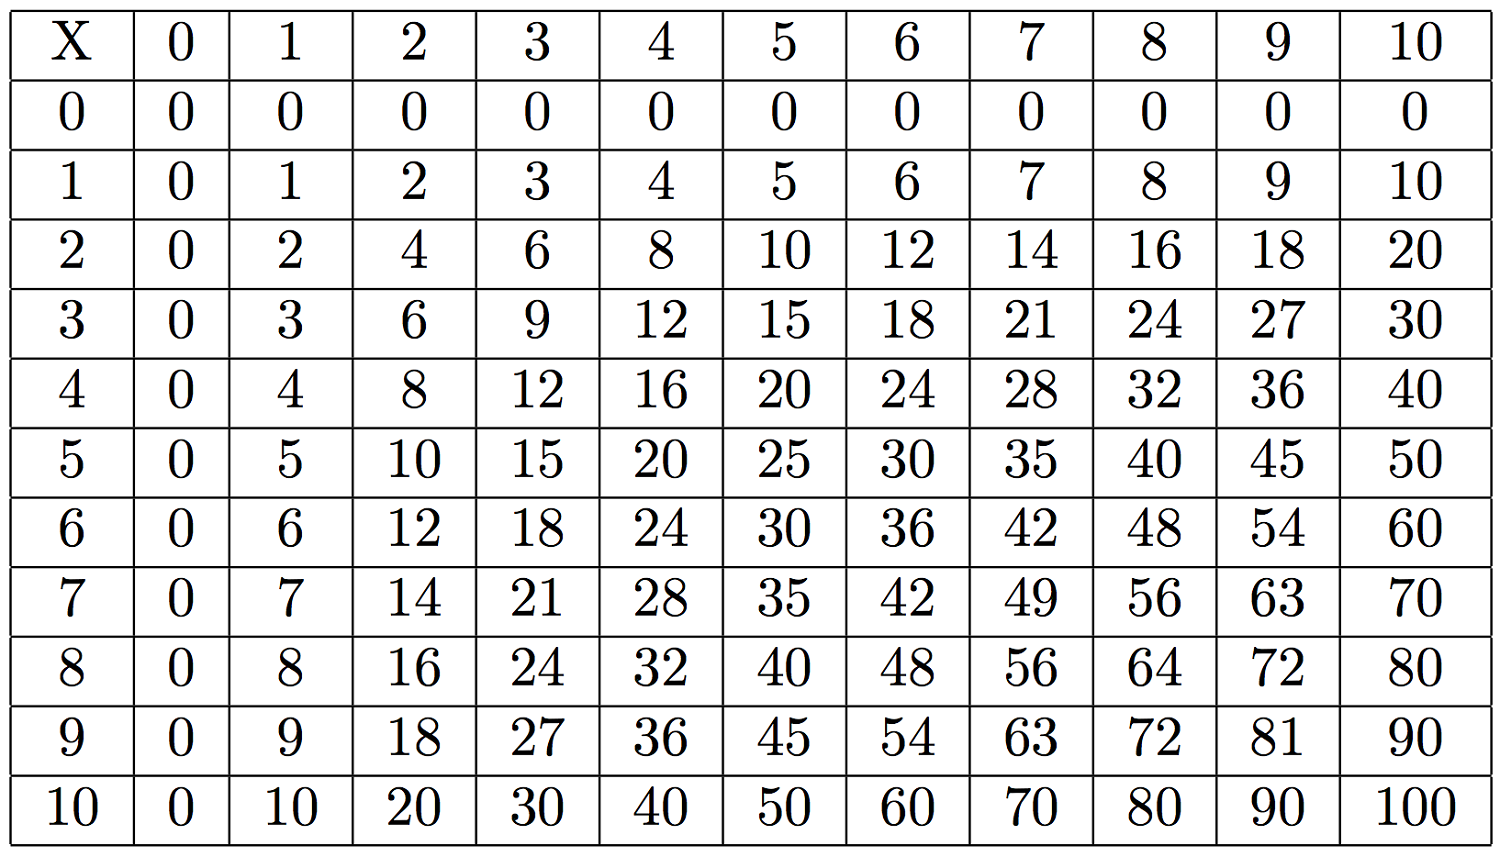 24x24 multiplication table multiplication chart 4th grade rounding root author at download free printable graphics printable multiplication table chart root gamestrikefo Choice Image